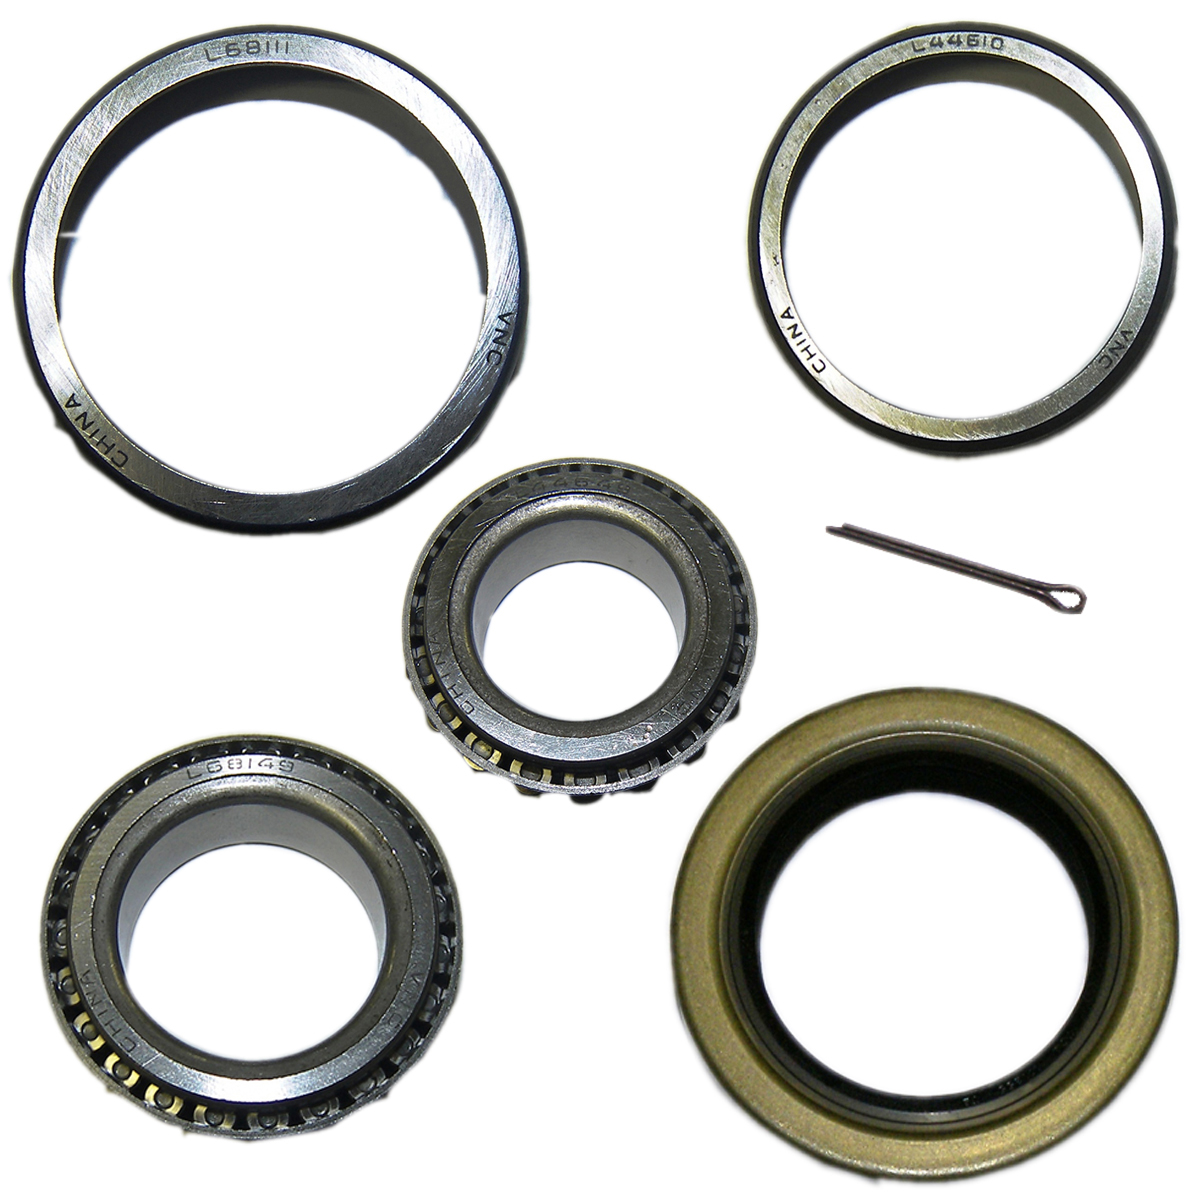 014-3500 AP Products Axle Bearing For 3500 Pound Axles